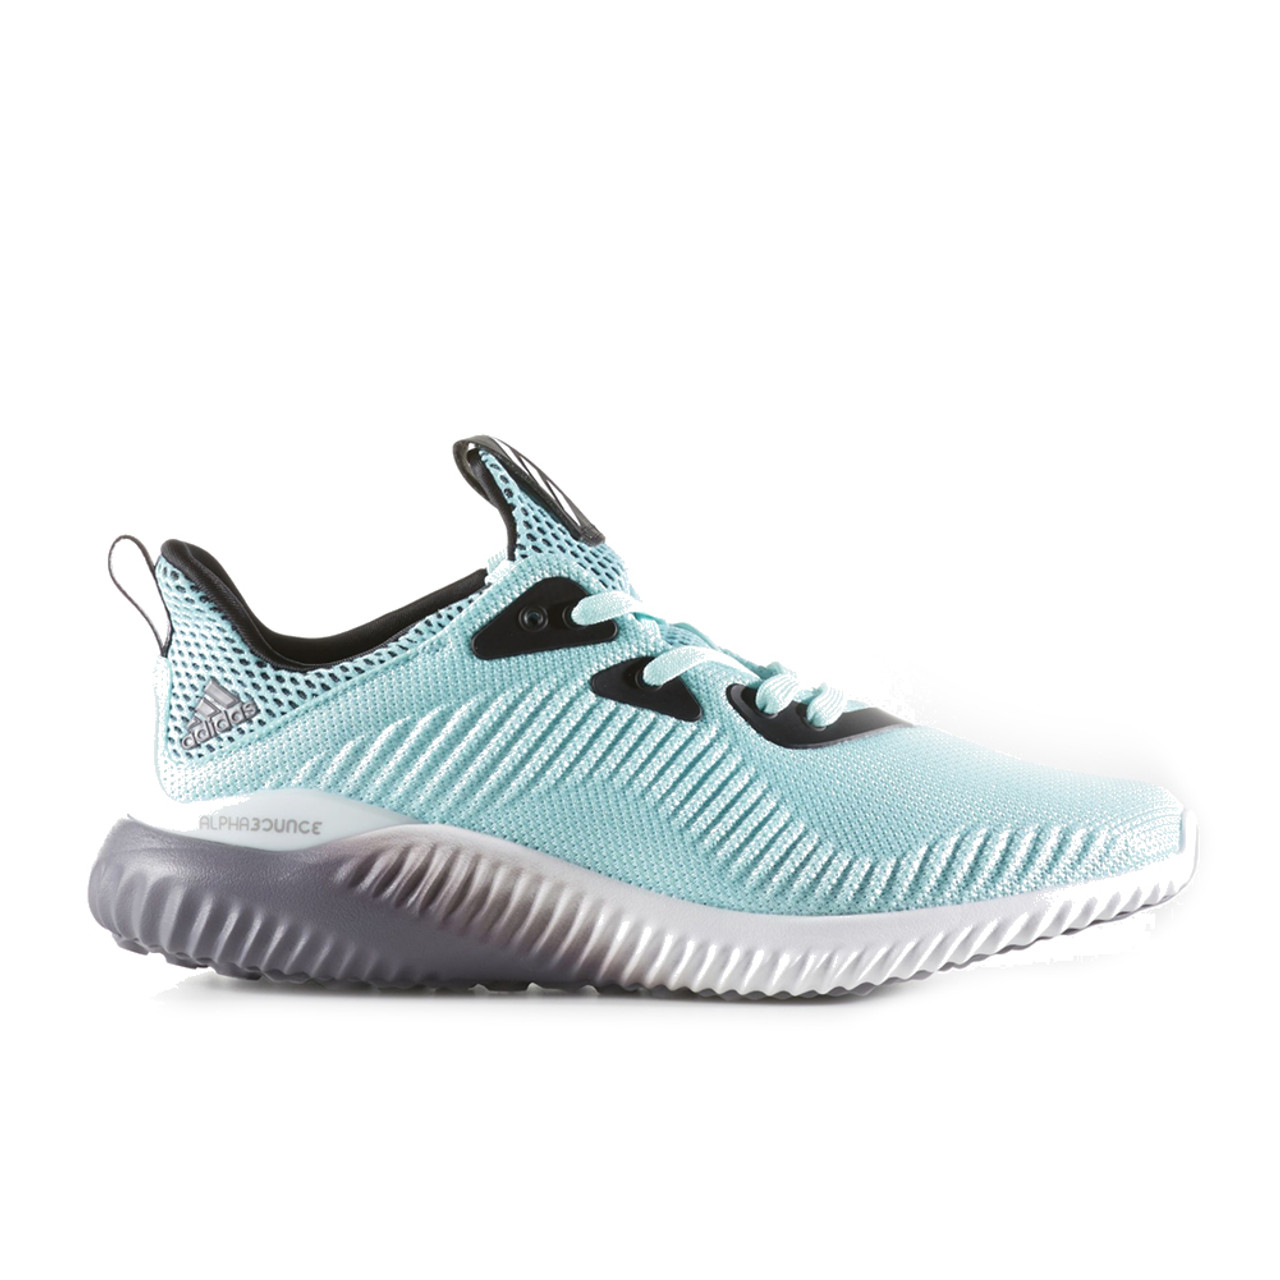 0f6d74b06 Adidas Women s Alphabounce Running Shoe Aqua Grey - Shop now   Shoolu.com